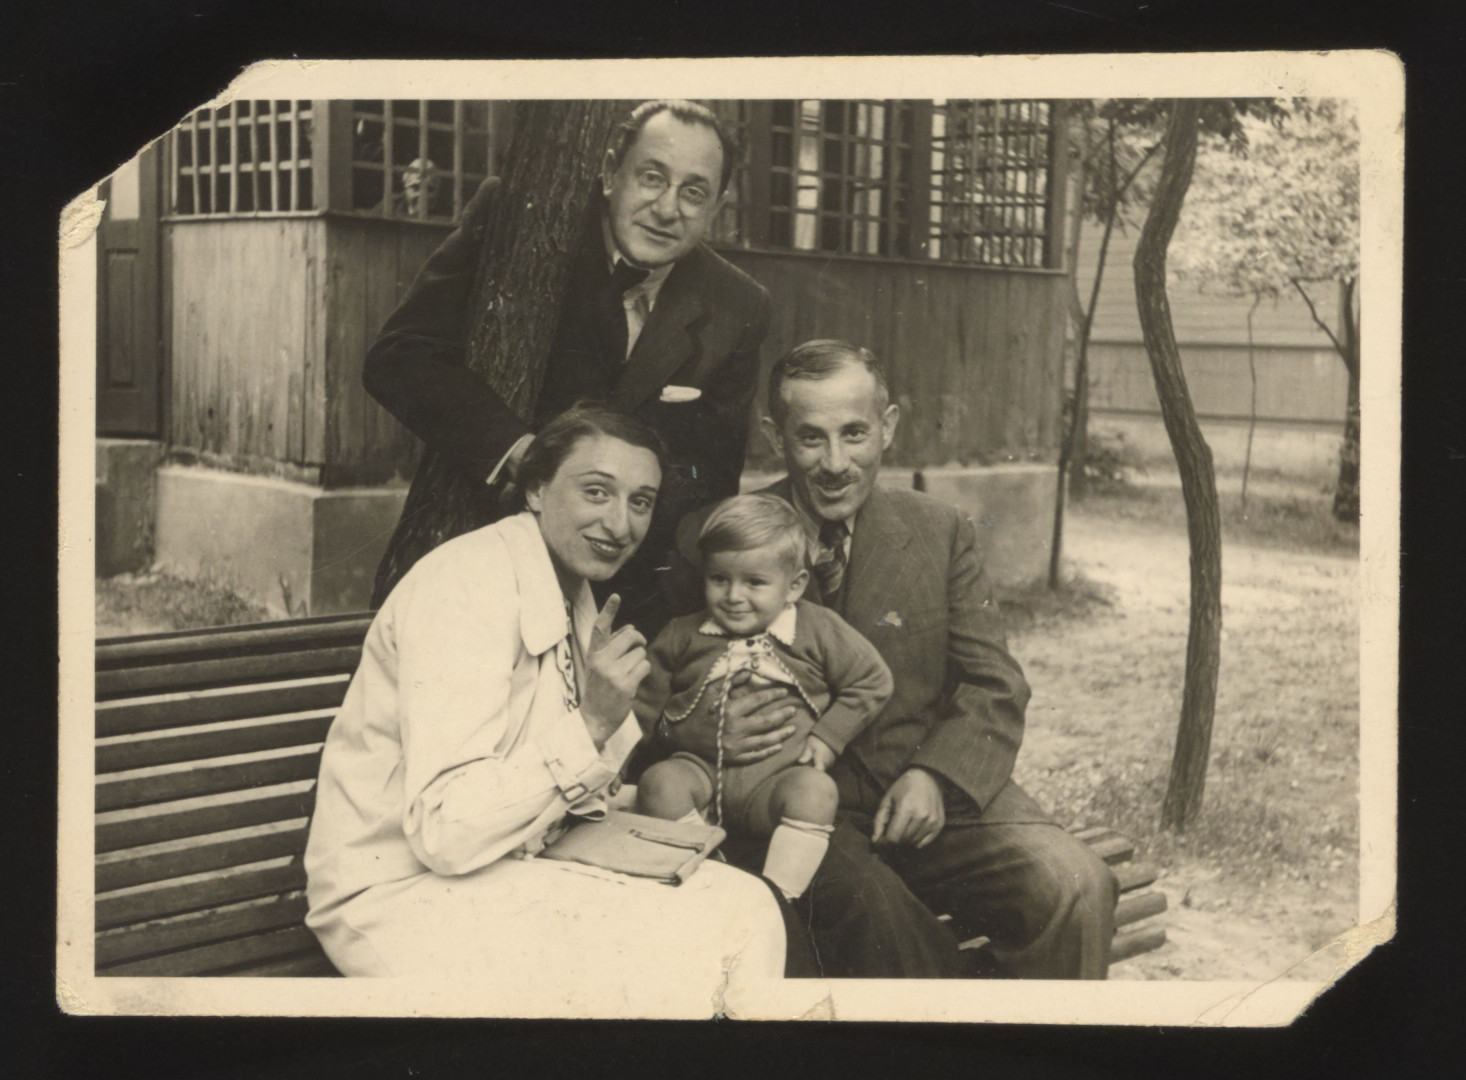 Portrait of a Polish Jewish family sitting on a bench in Wisniowa Gora shortly before the start of World War II.  Among those pictured are Marcel Rozenberg (standing back), his brother and sister-in-law and his young son Stefan.